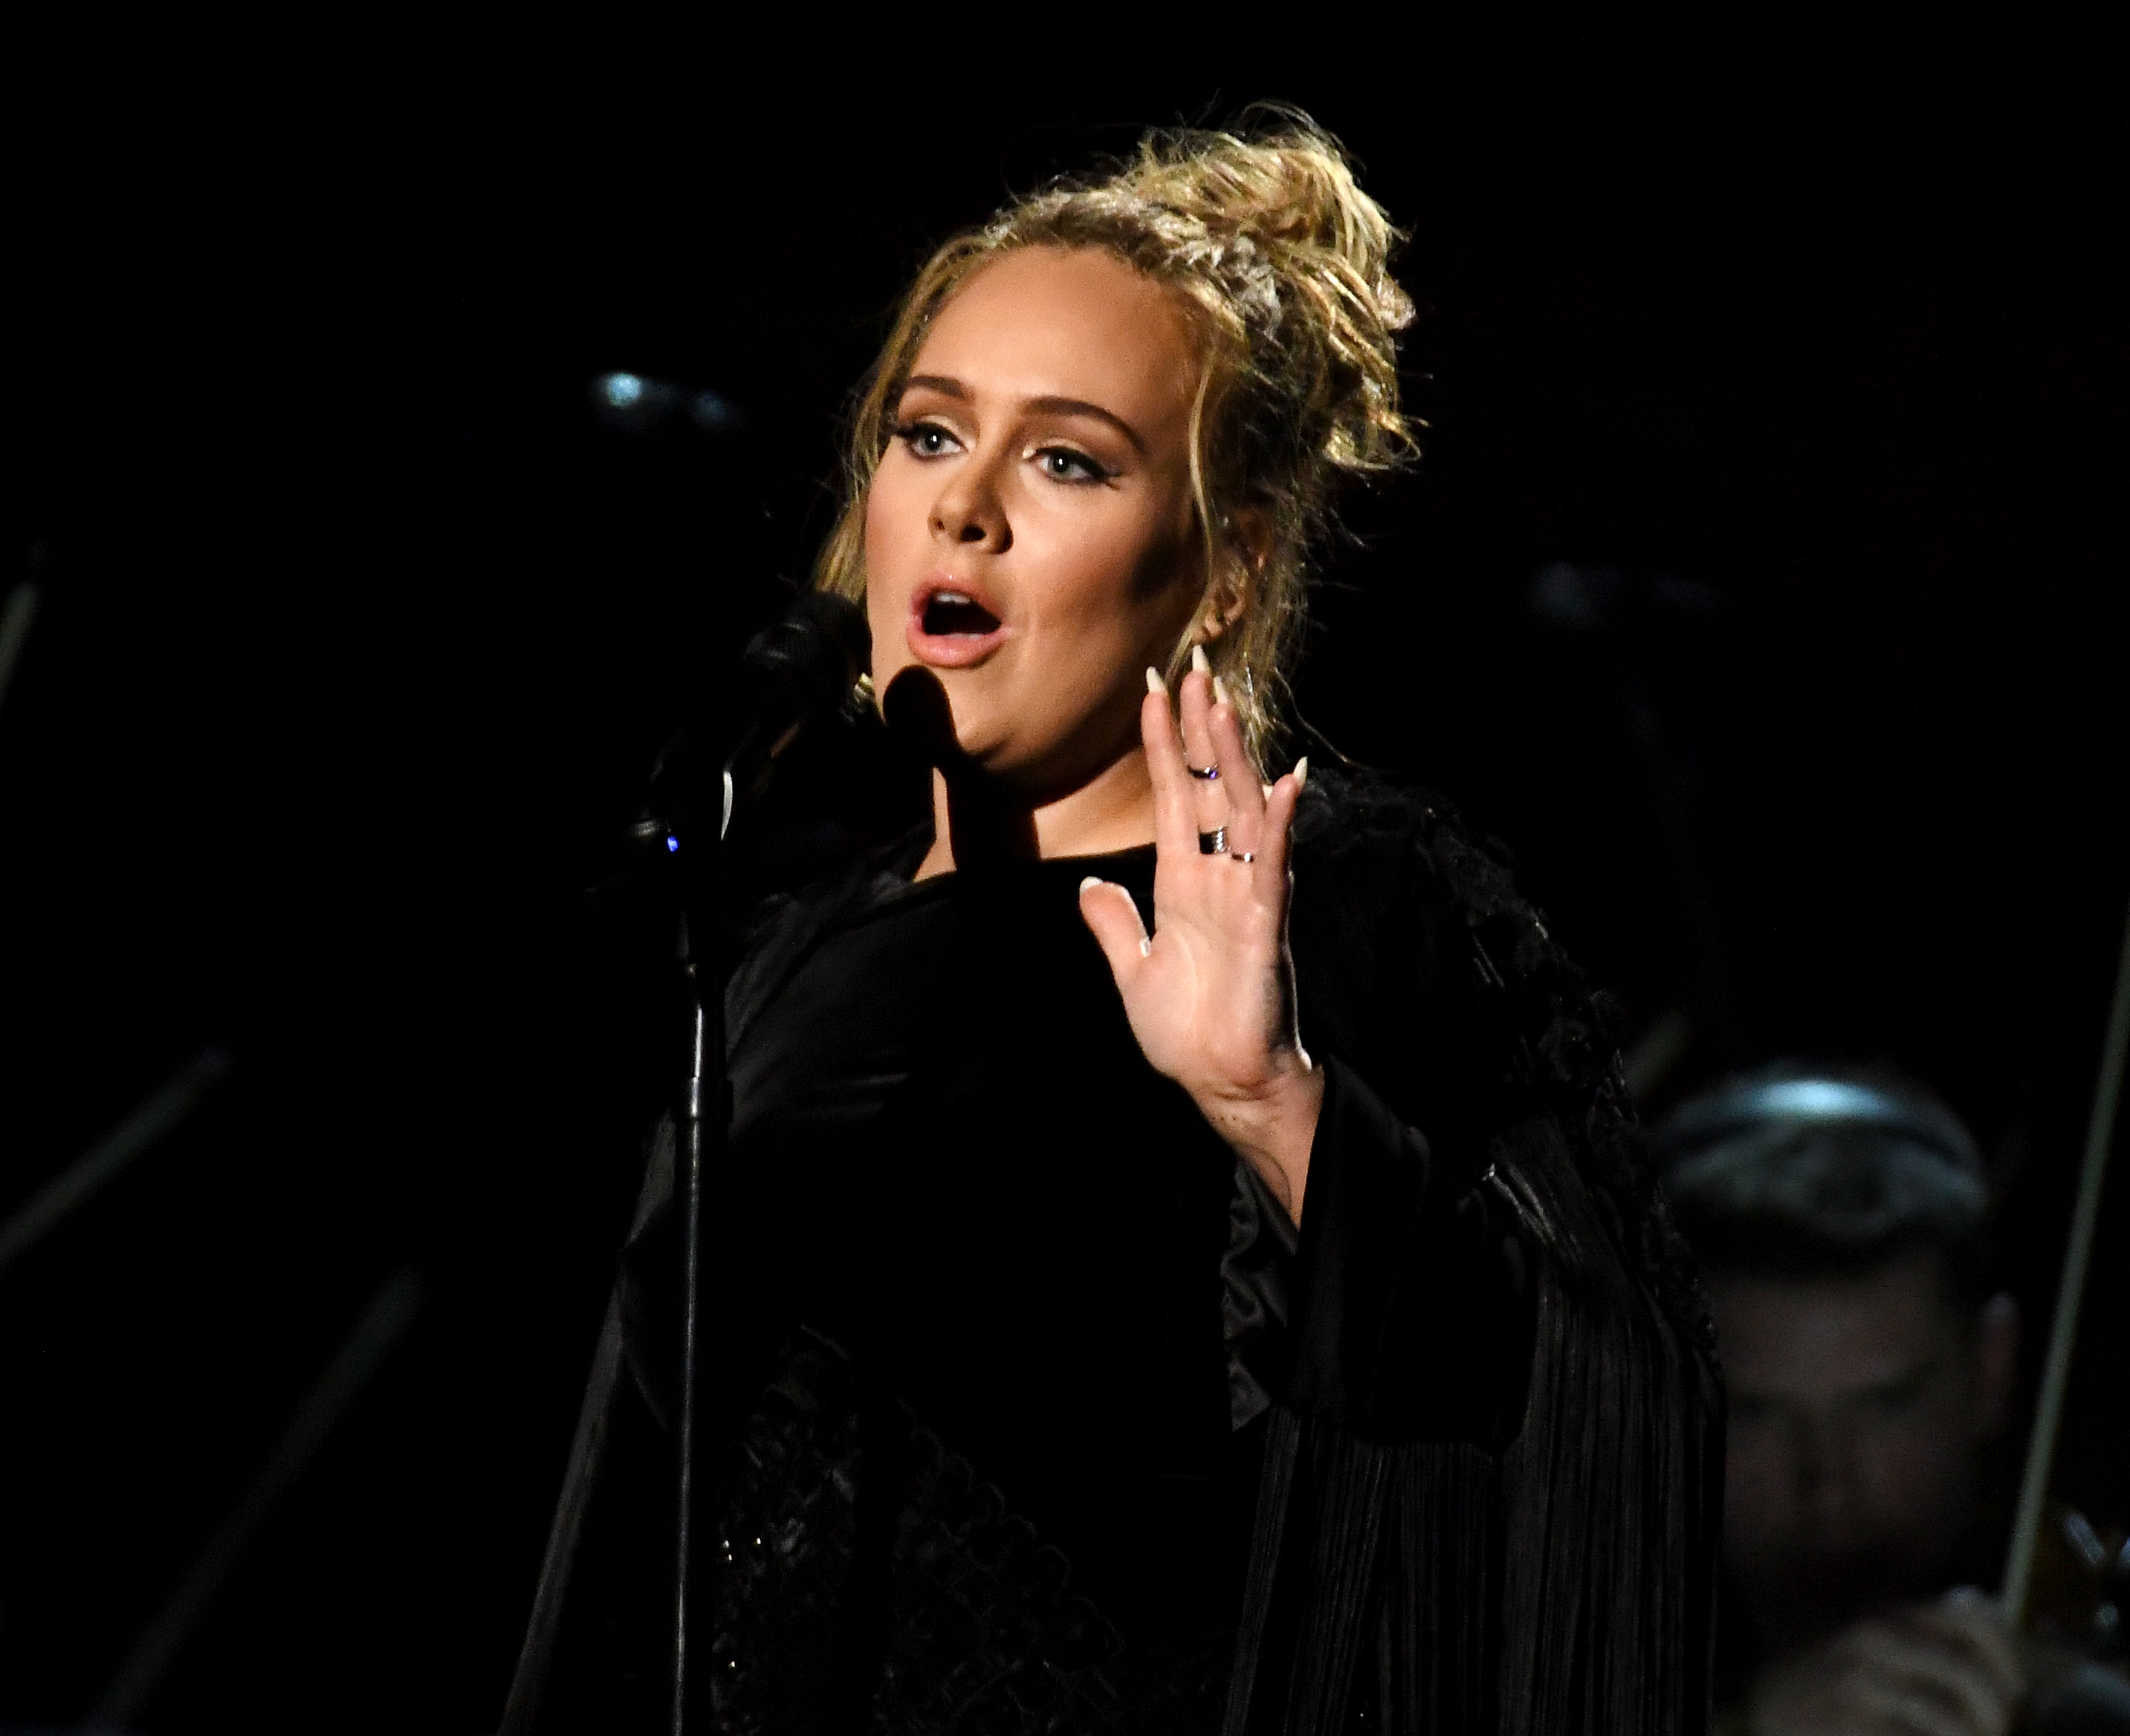 Adele paused and started over her Grammys performance like the total perfectionist boss she is